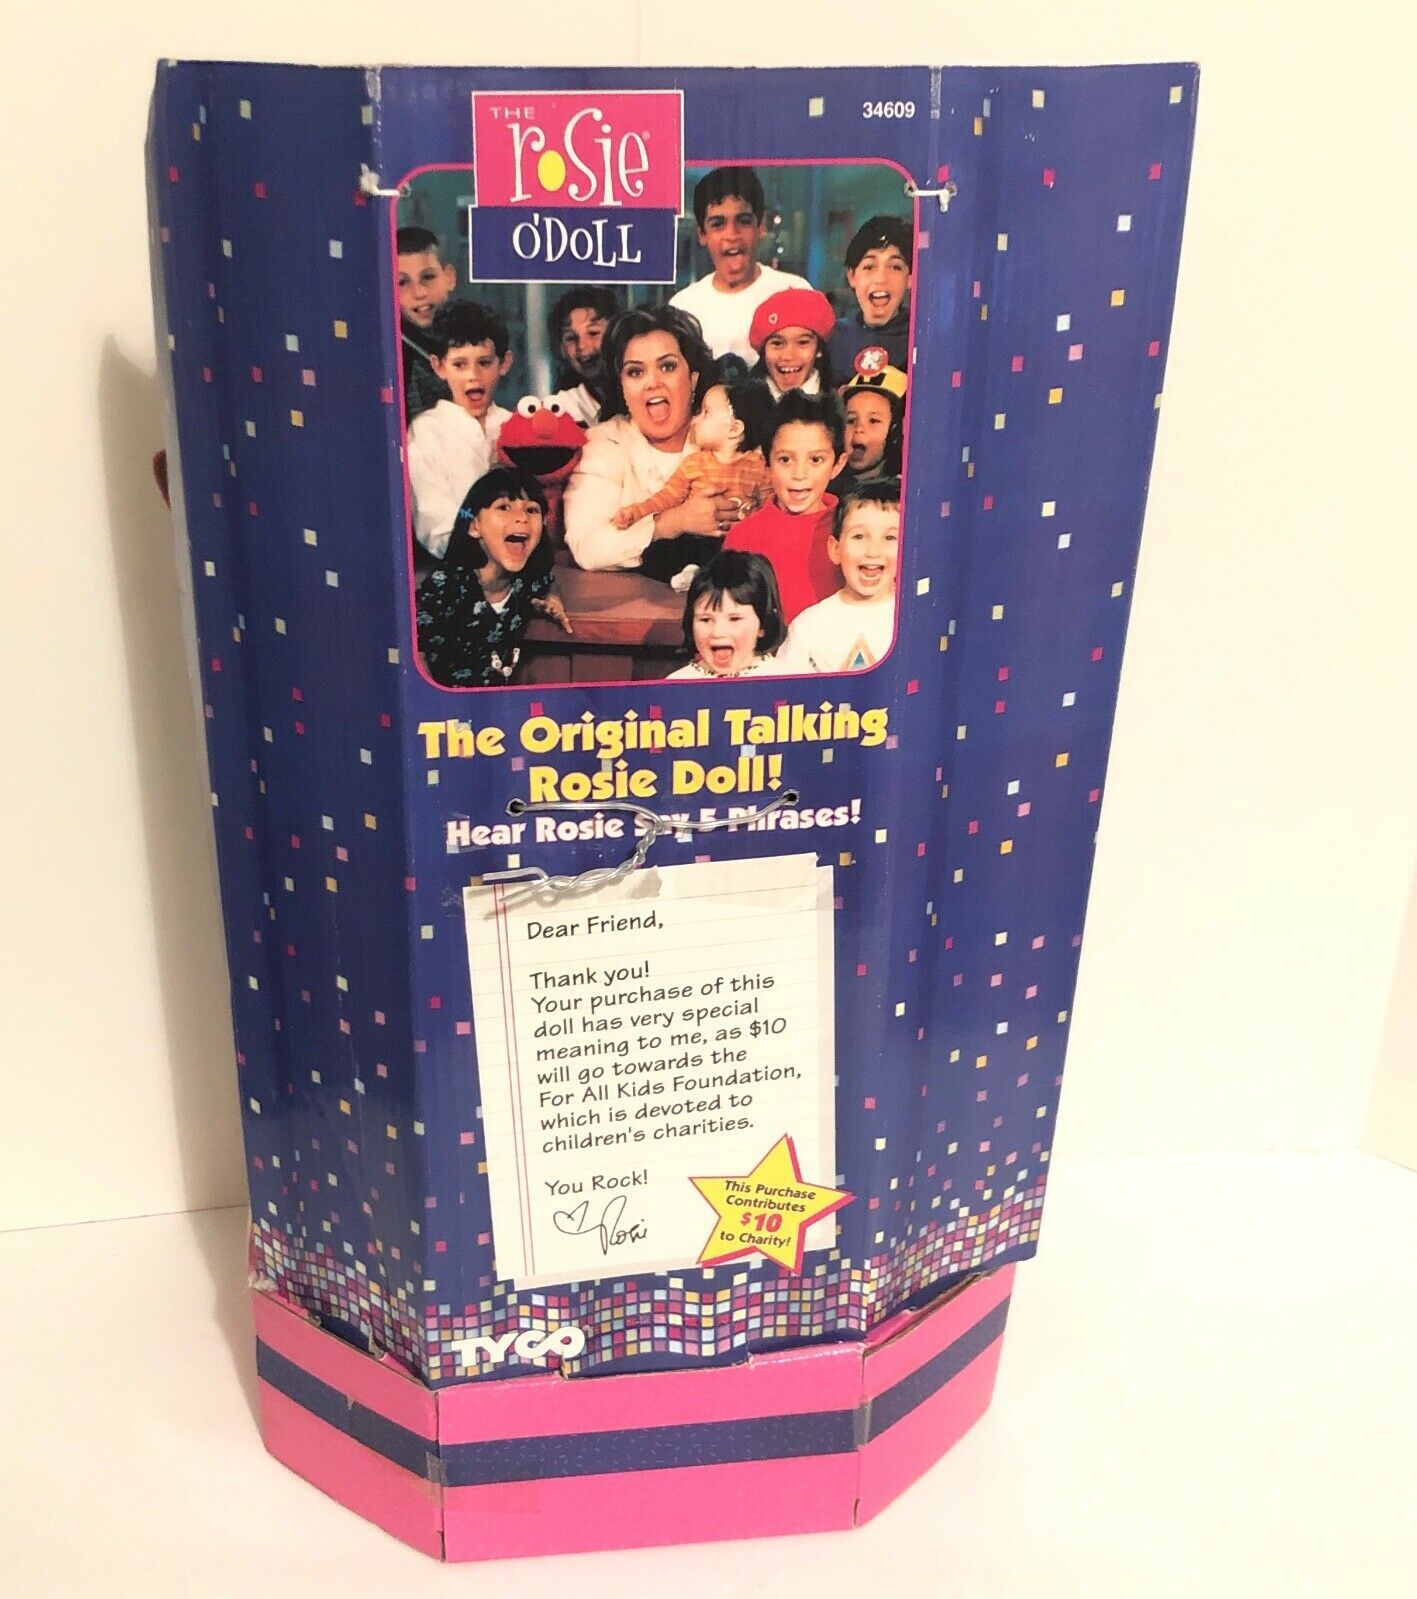 """New 1997 Rosie O'Donnell (O'Doll) Talking Celebrity Plush Doll 18"""" Tyco- Tested image 7"""